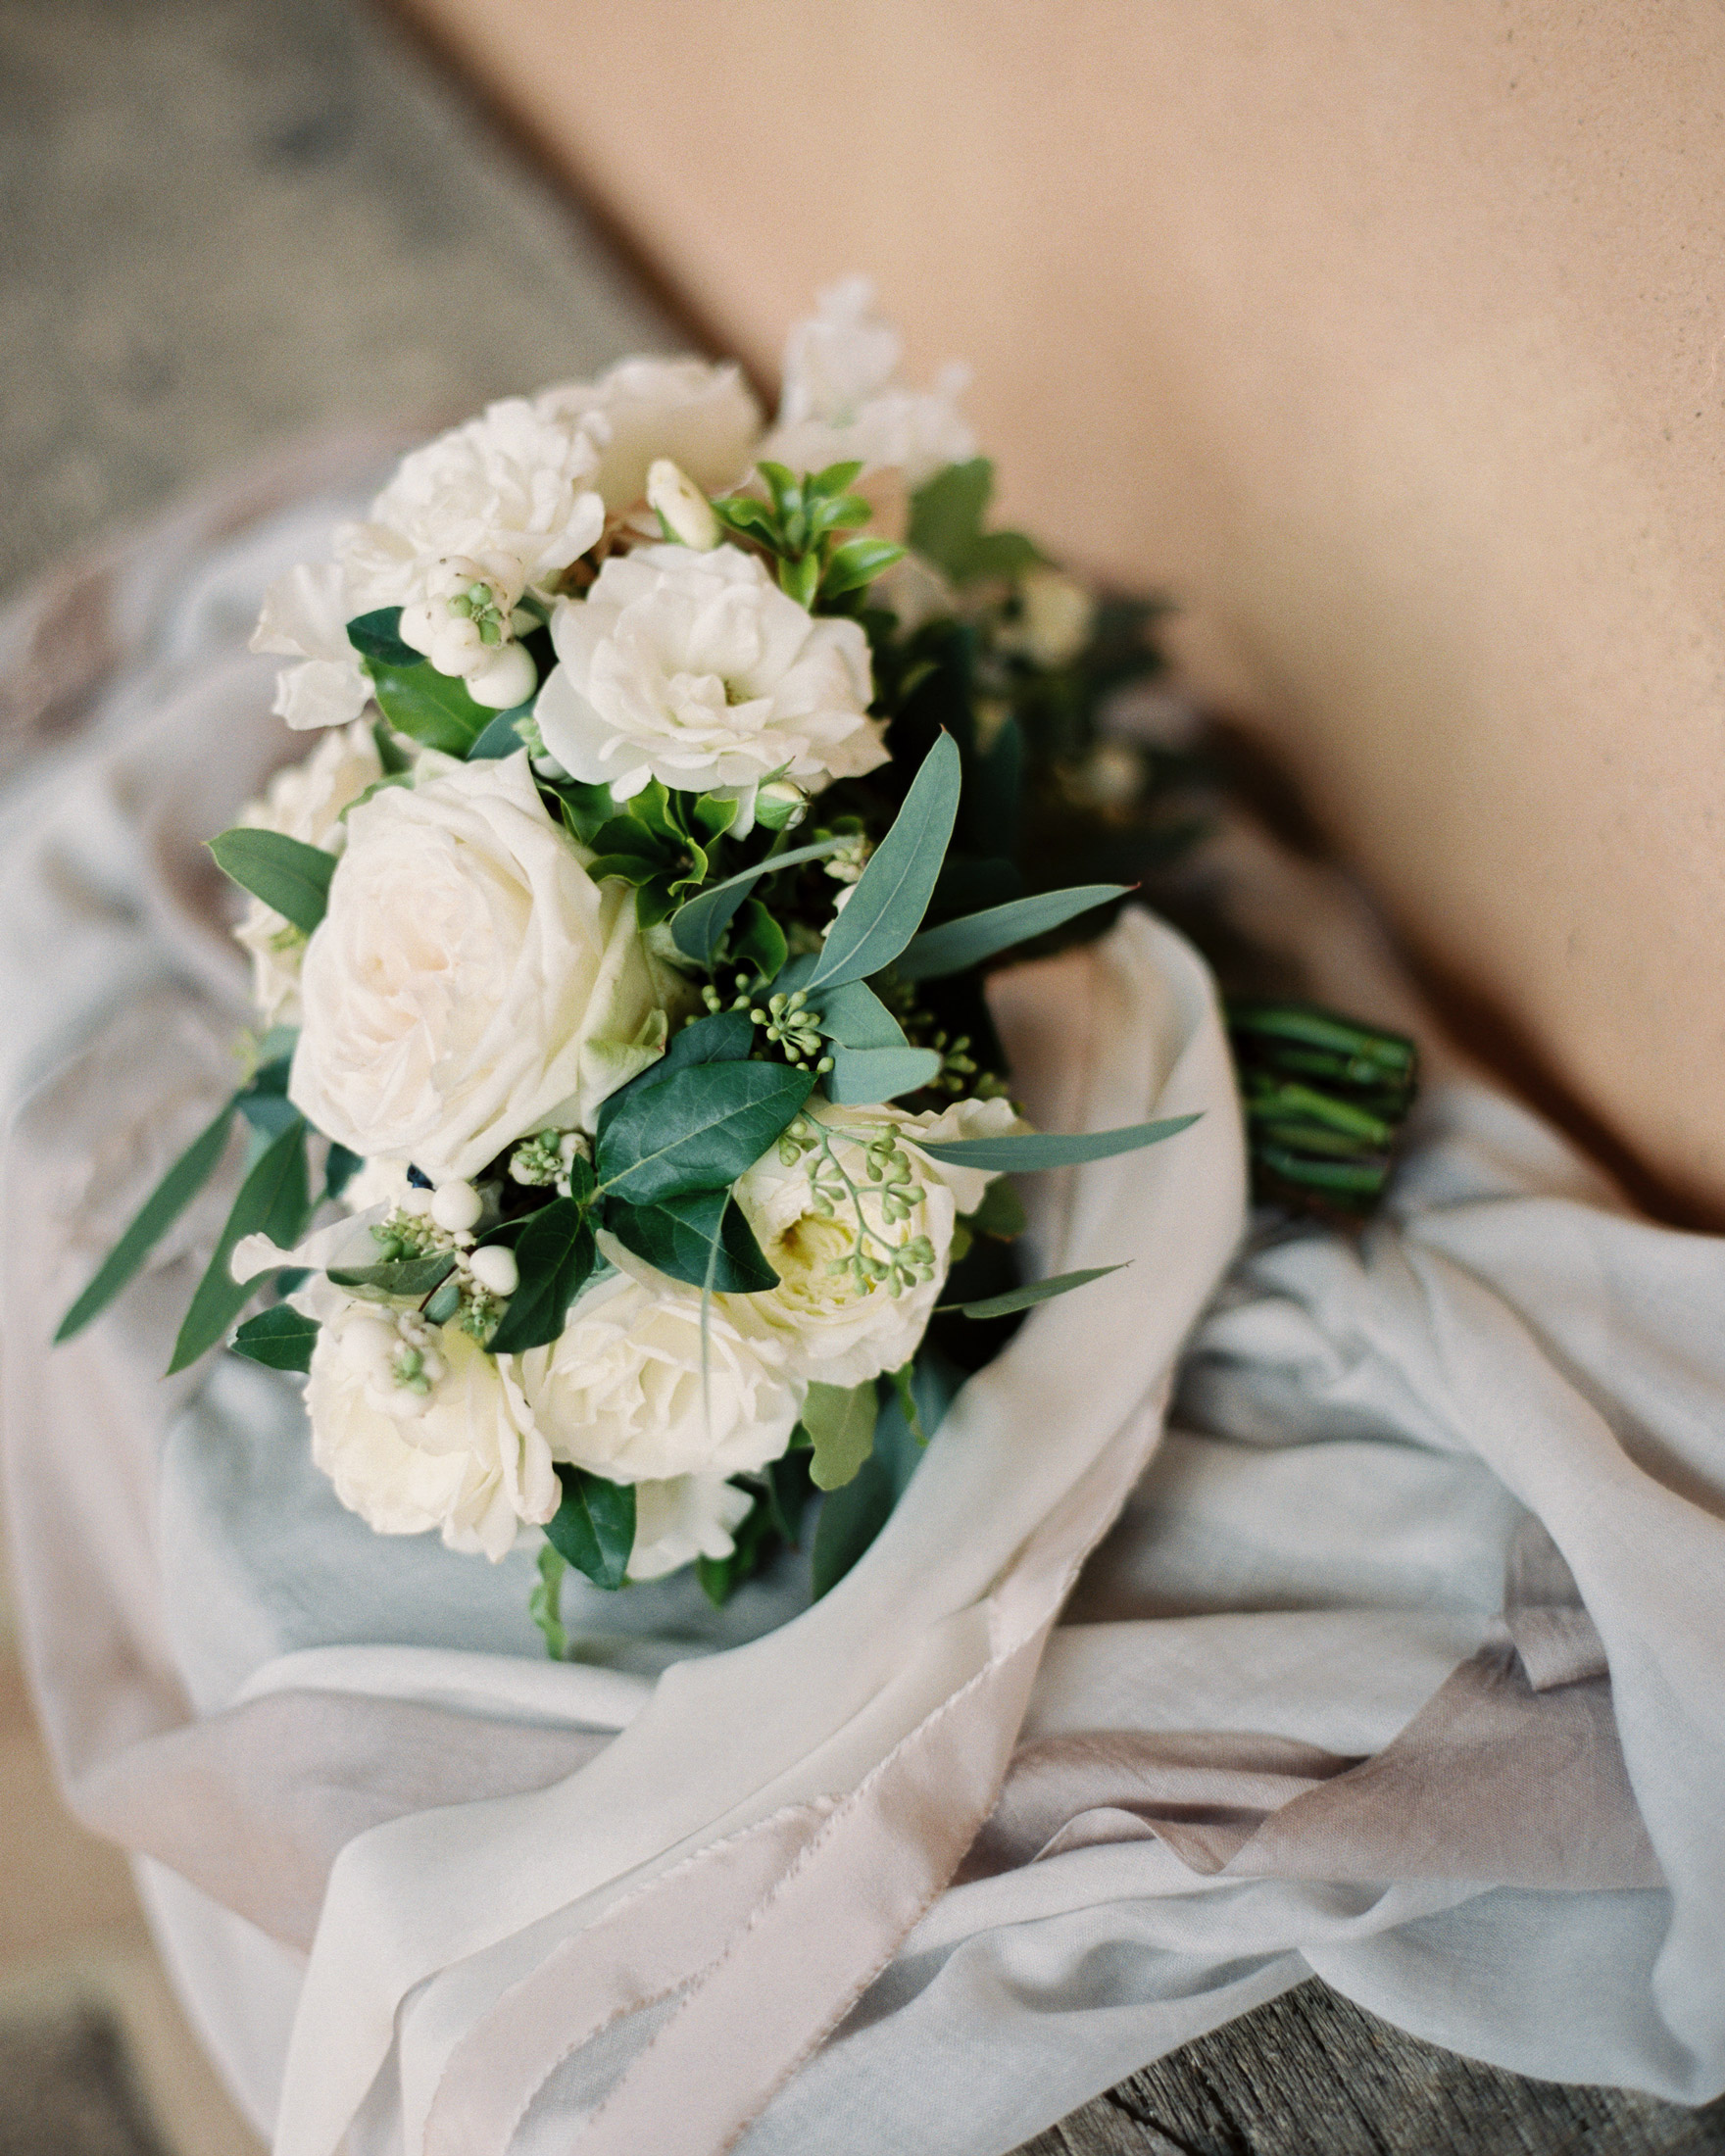 christine-dagan-wedding-bouquet-4282_03-s113011-0616.jpg